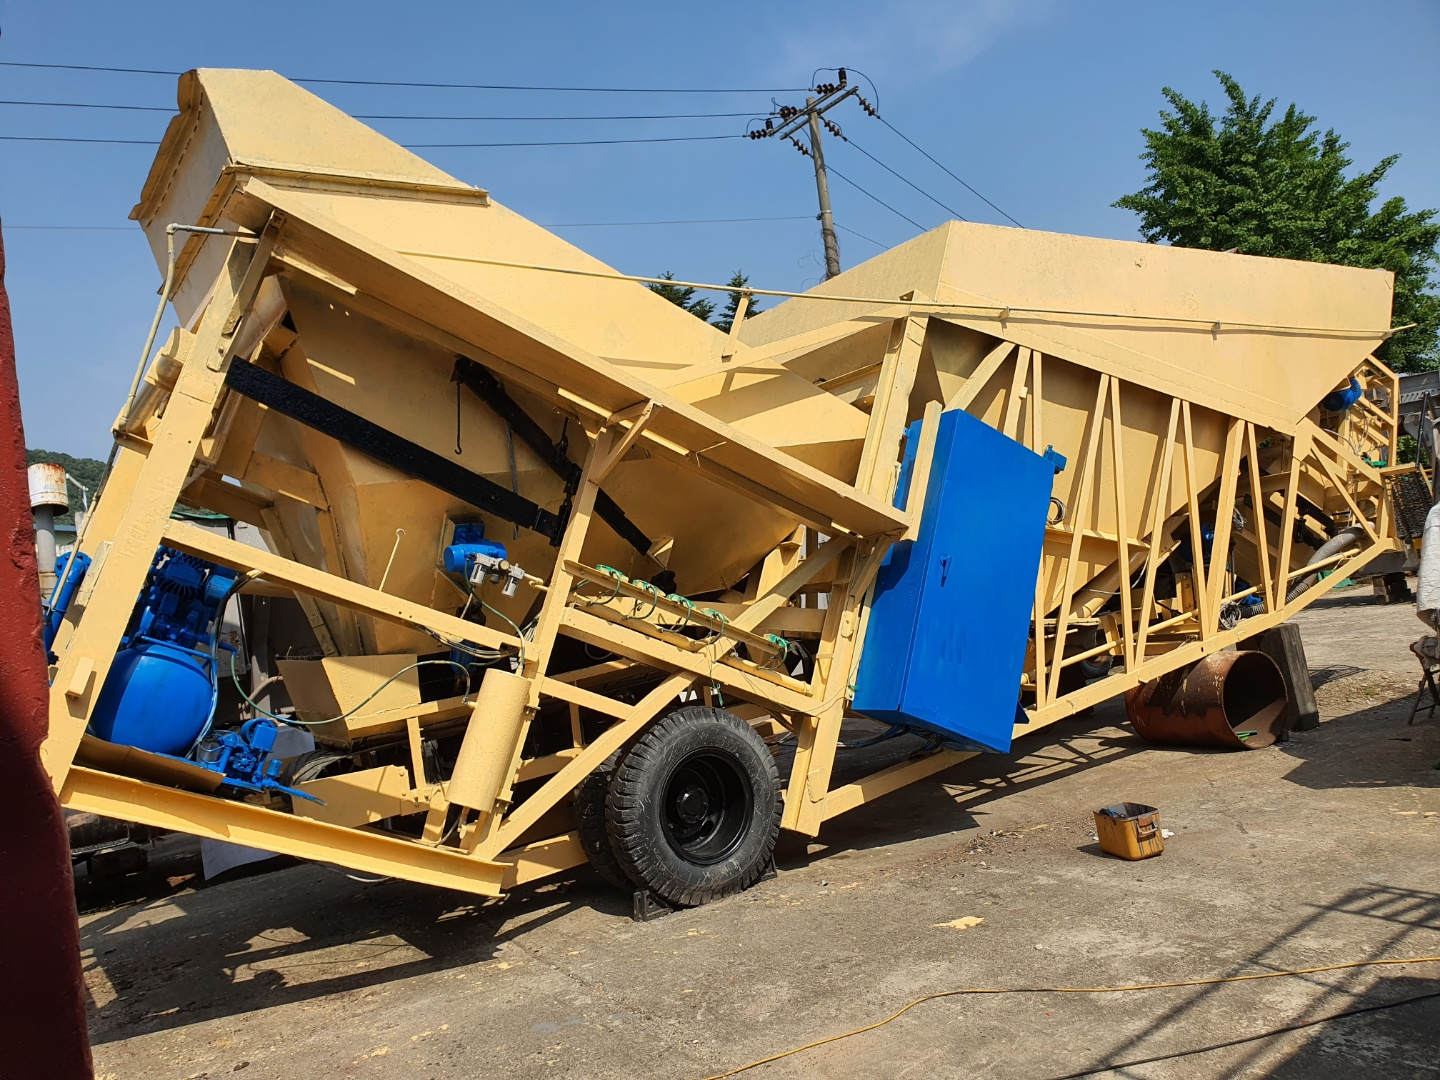 BP,  60-45m3,  for sale used  Moblile type,  for sale used  Portable Concrete Batching plant,  Maker-- HAGAN(USA), Mixer-- 1.5m3 Batch,  Capacity-- 60-45m3/hour,  Repaint, Repair completed,  FULL ONE SET,     smgyo@naver.com,      중고 이동식 콘..